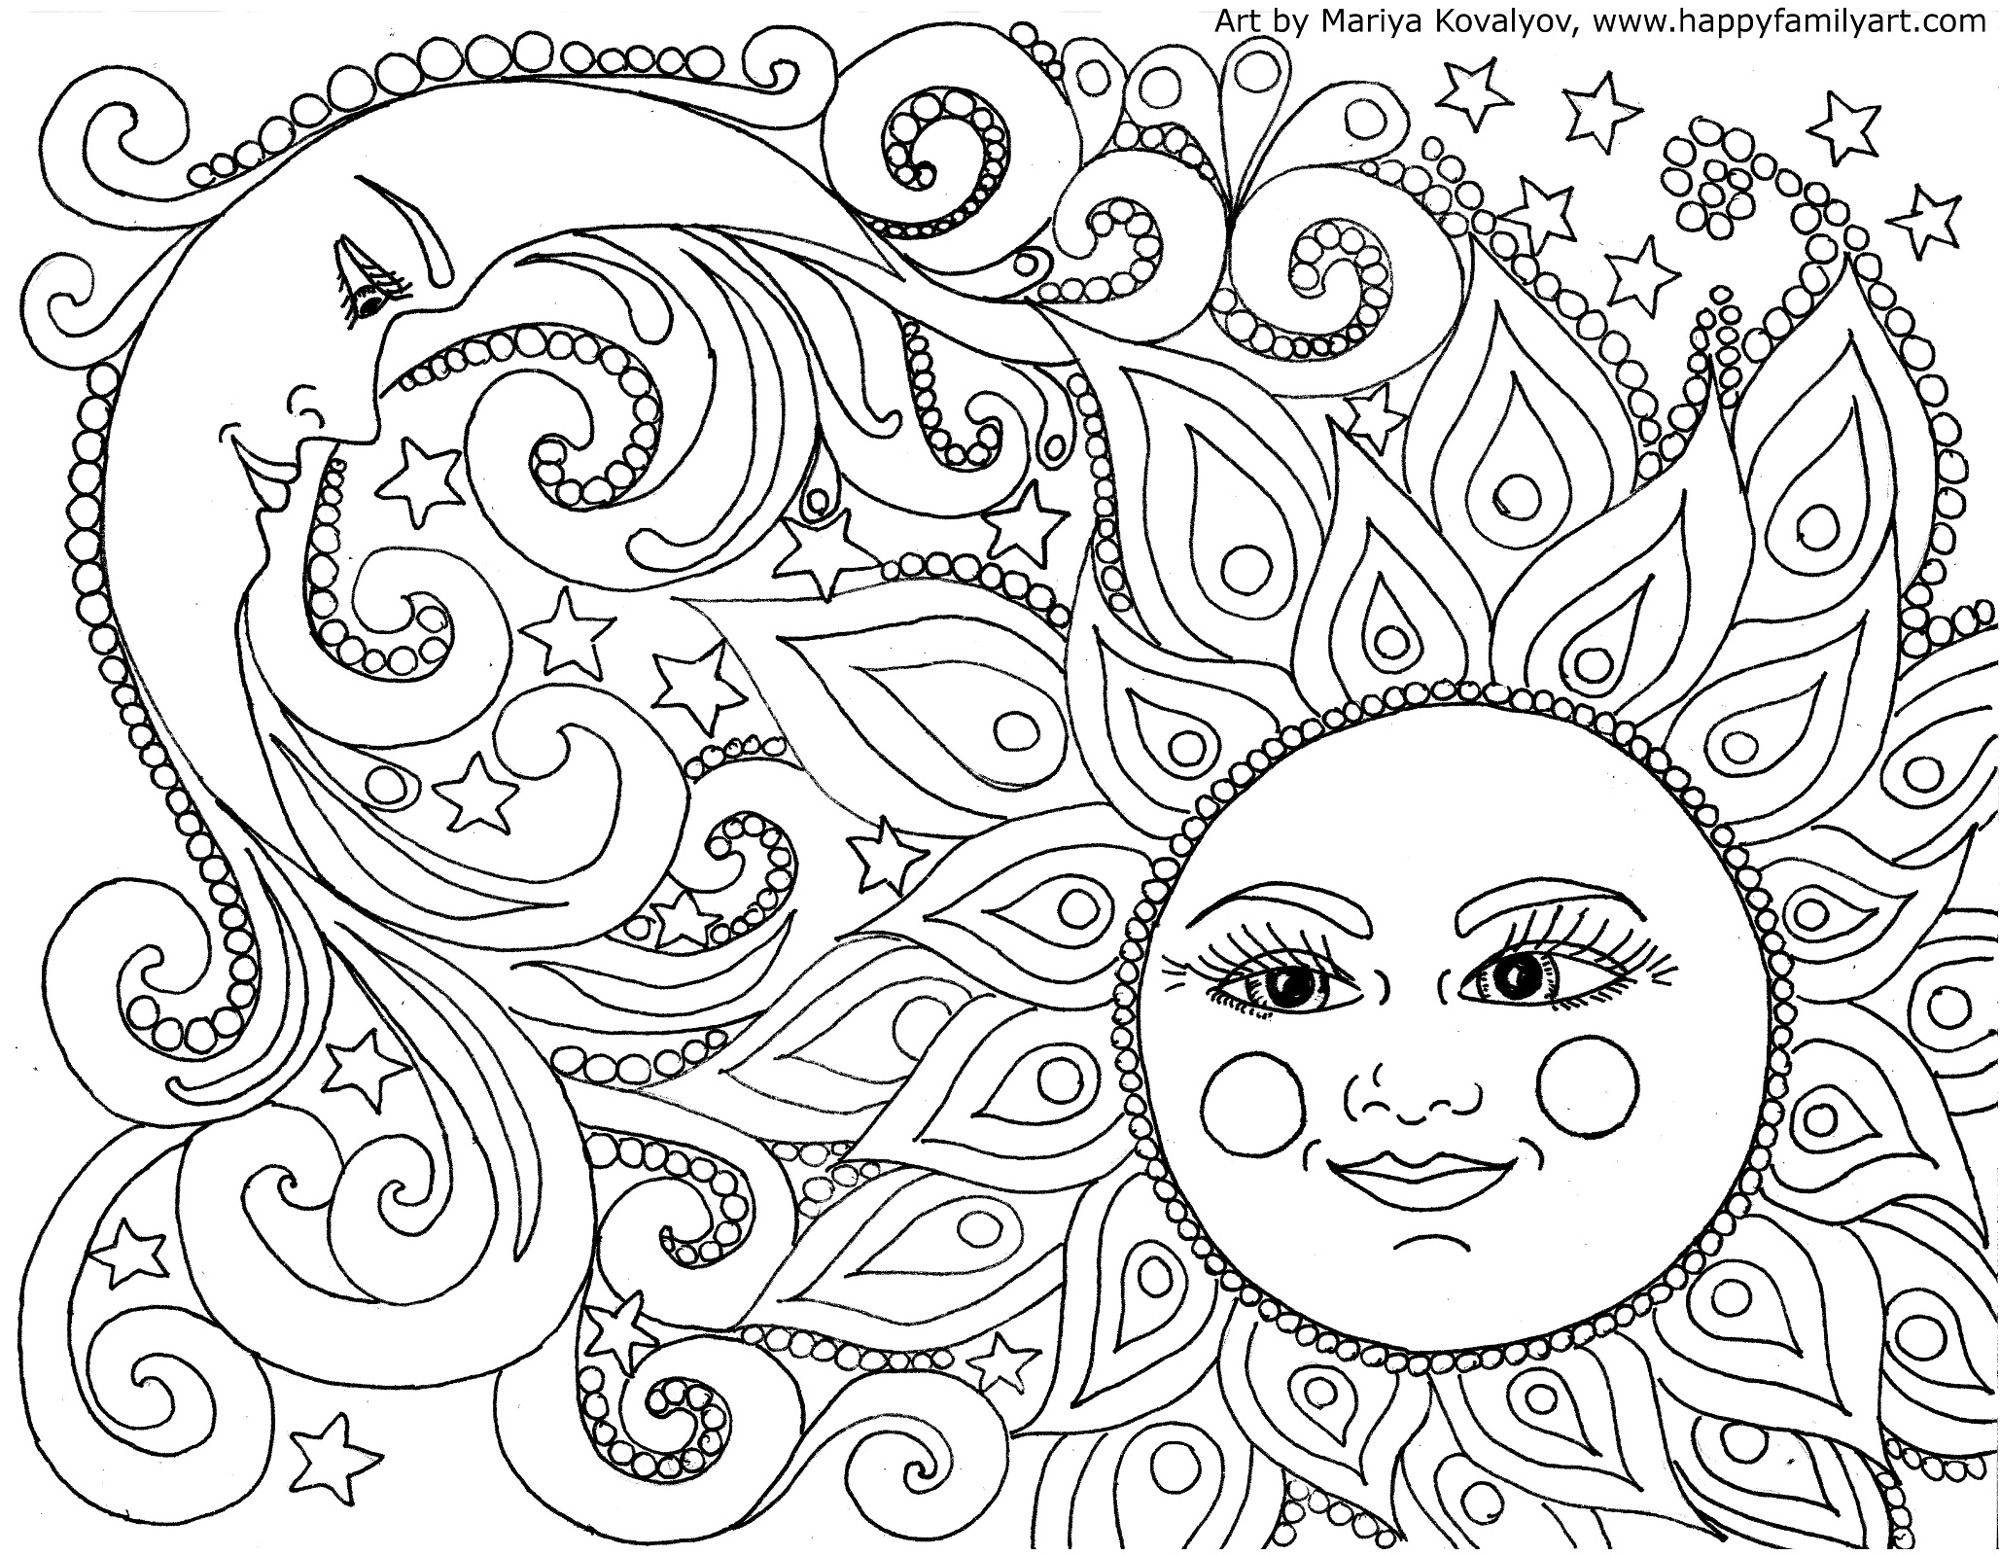 Big Mandala Coloring Pages  to Print 15k - Free For kids